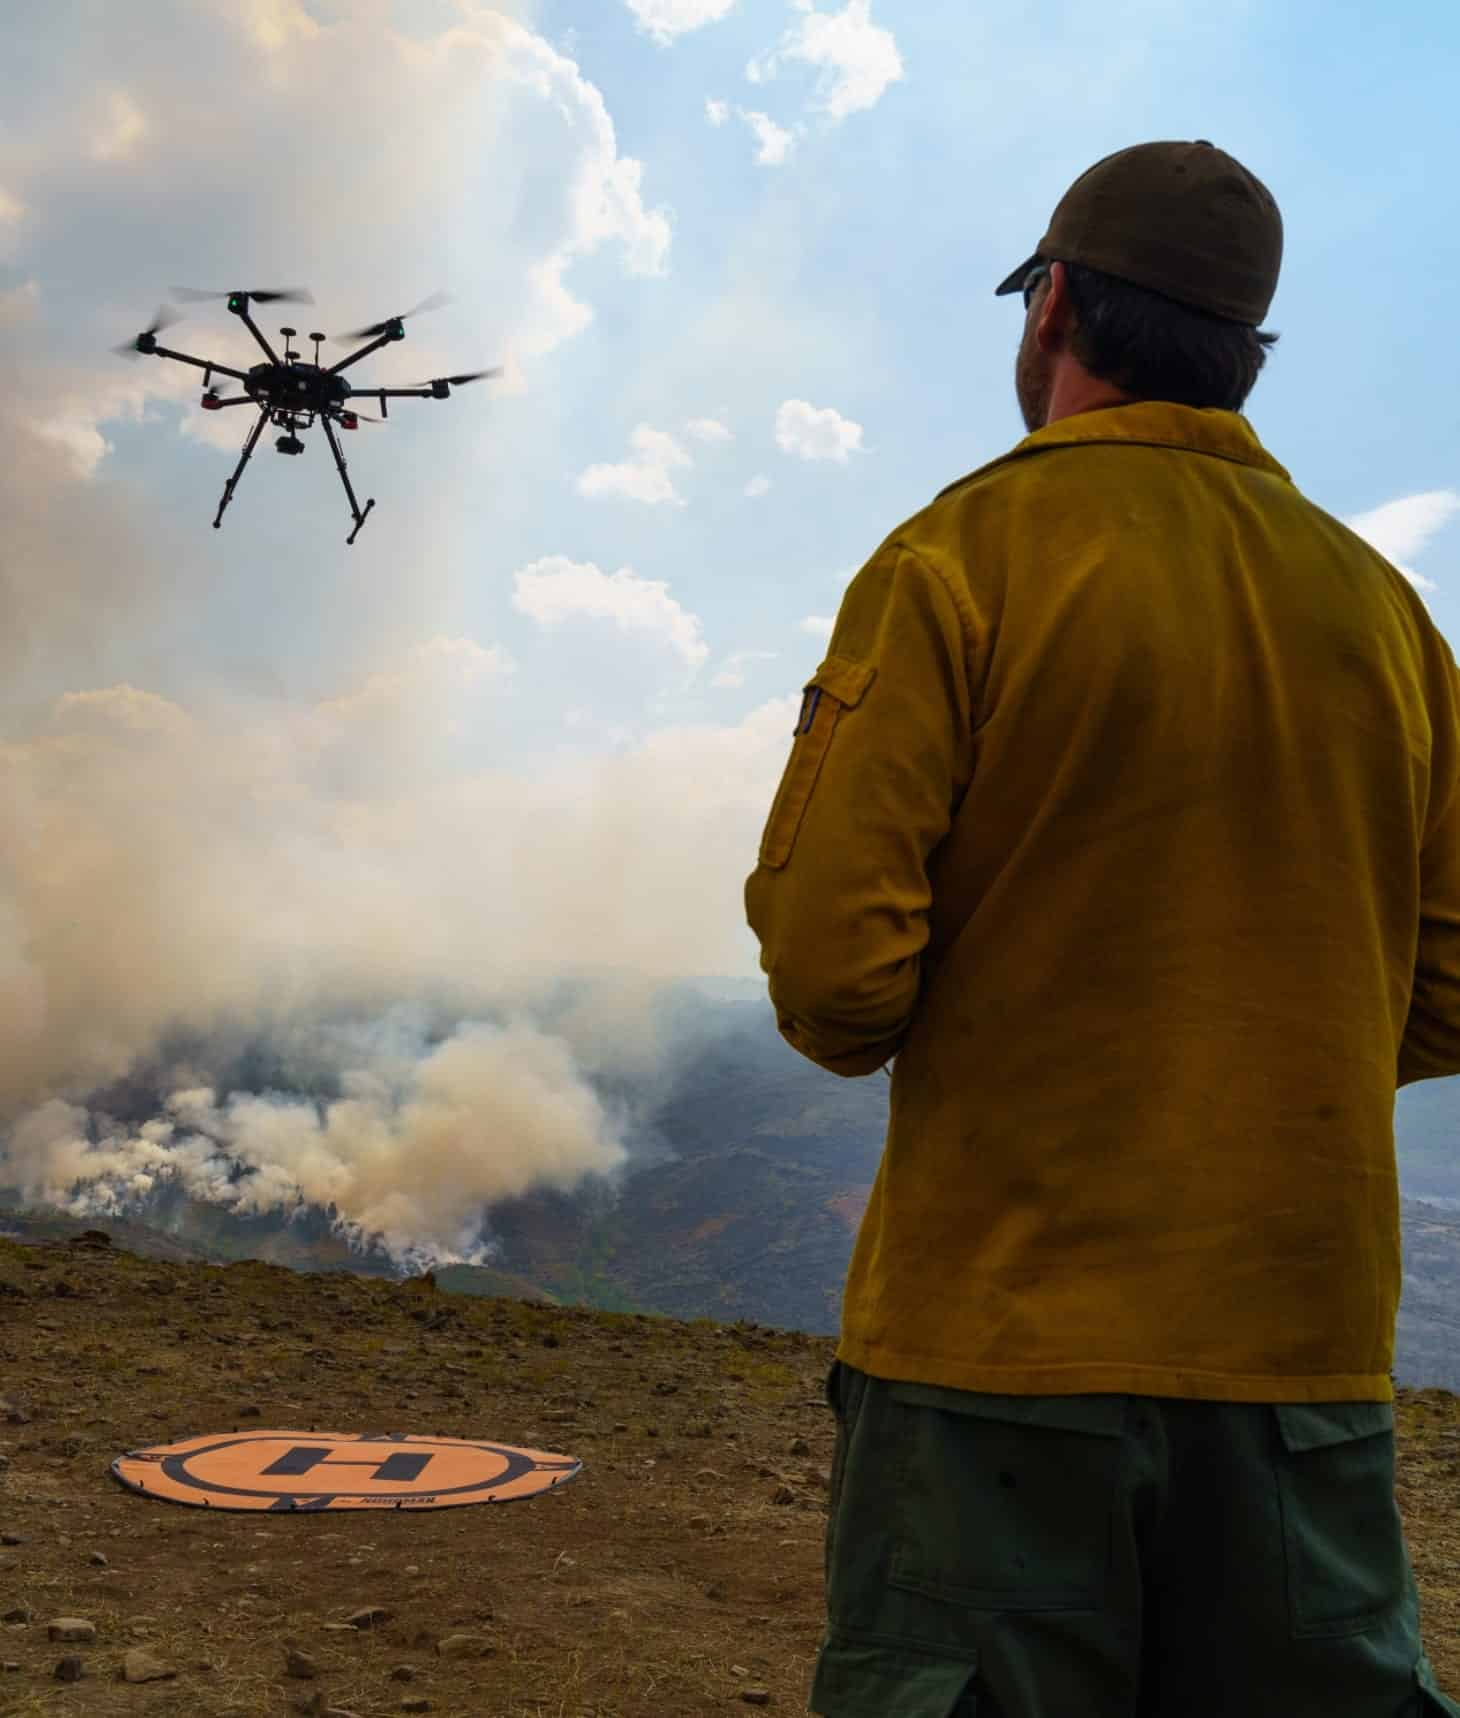 Washington needs to reconsider drone-banning proposals, says CEO Drone Amplified